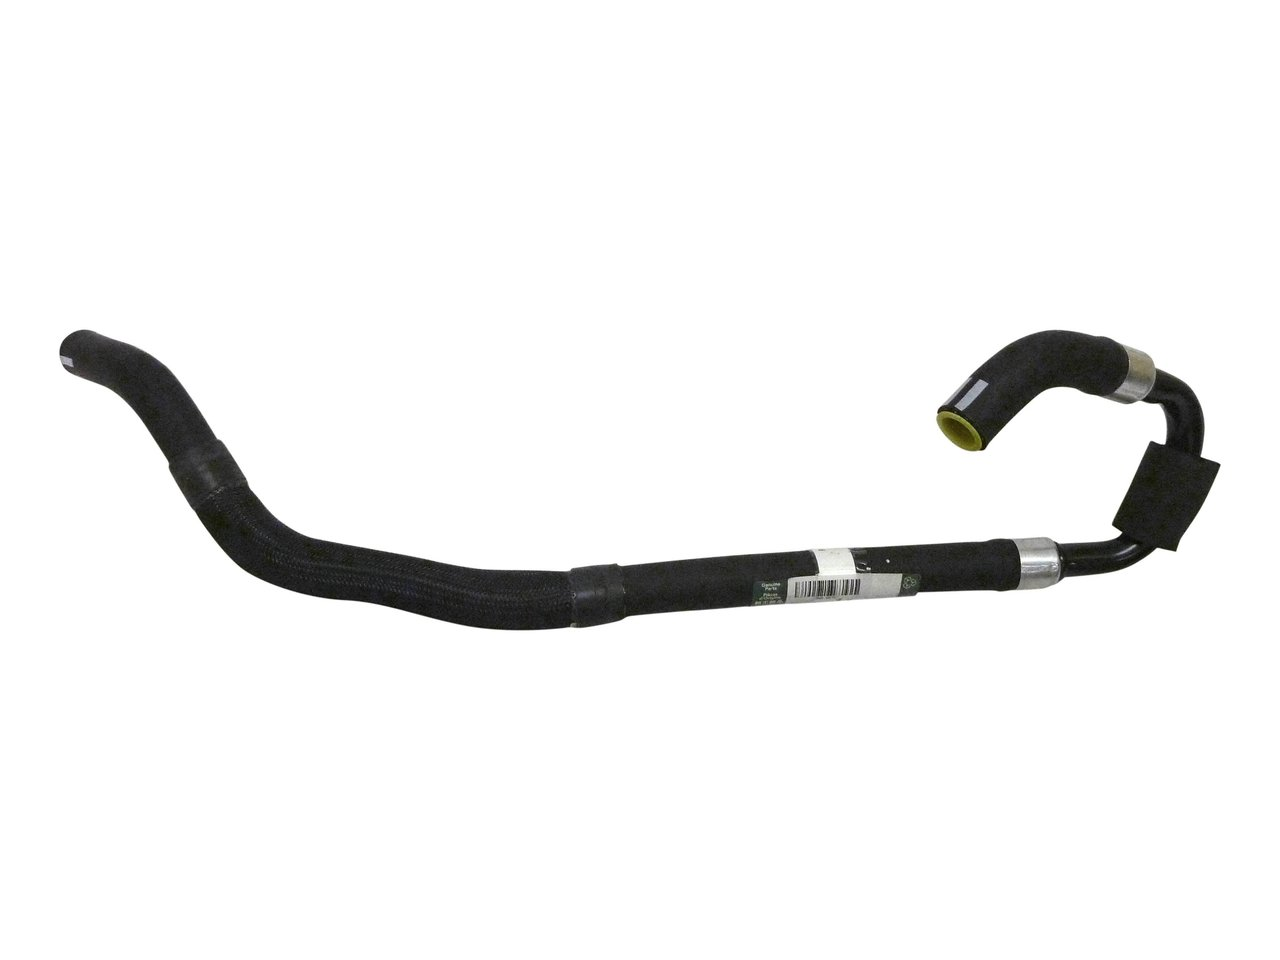 Power Steering Hose For Discovery 2 Td5 Reservoir To Pump And Hoses Suitable Genuine Anr6974